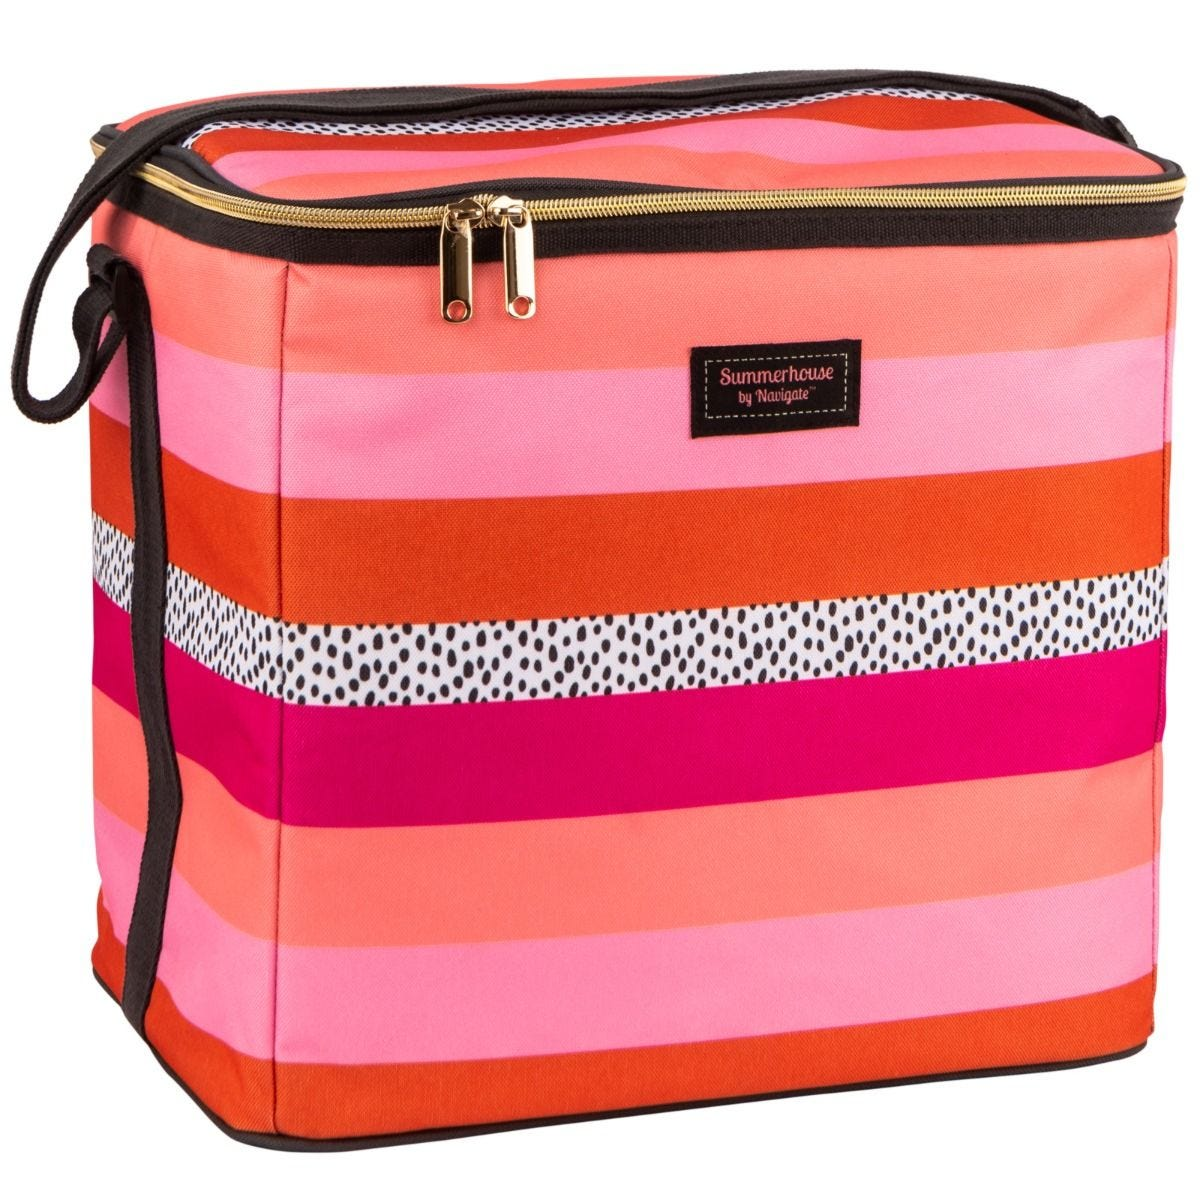 Summerhouse Tribal Fusion Striped Family Cool Bag